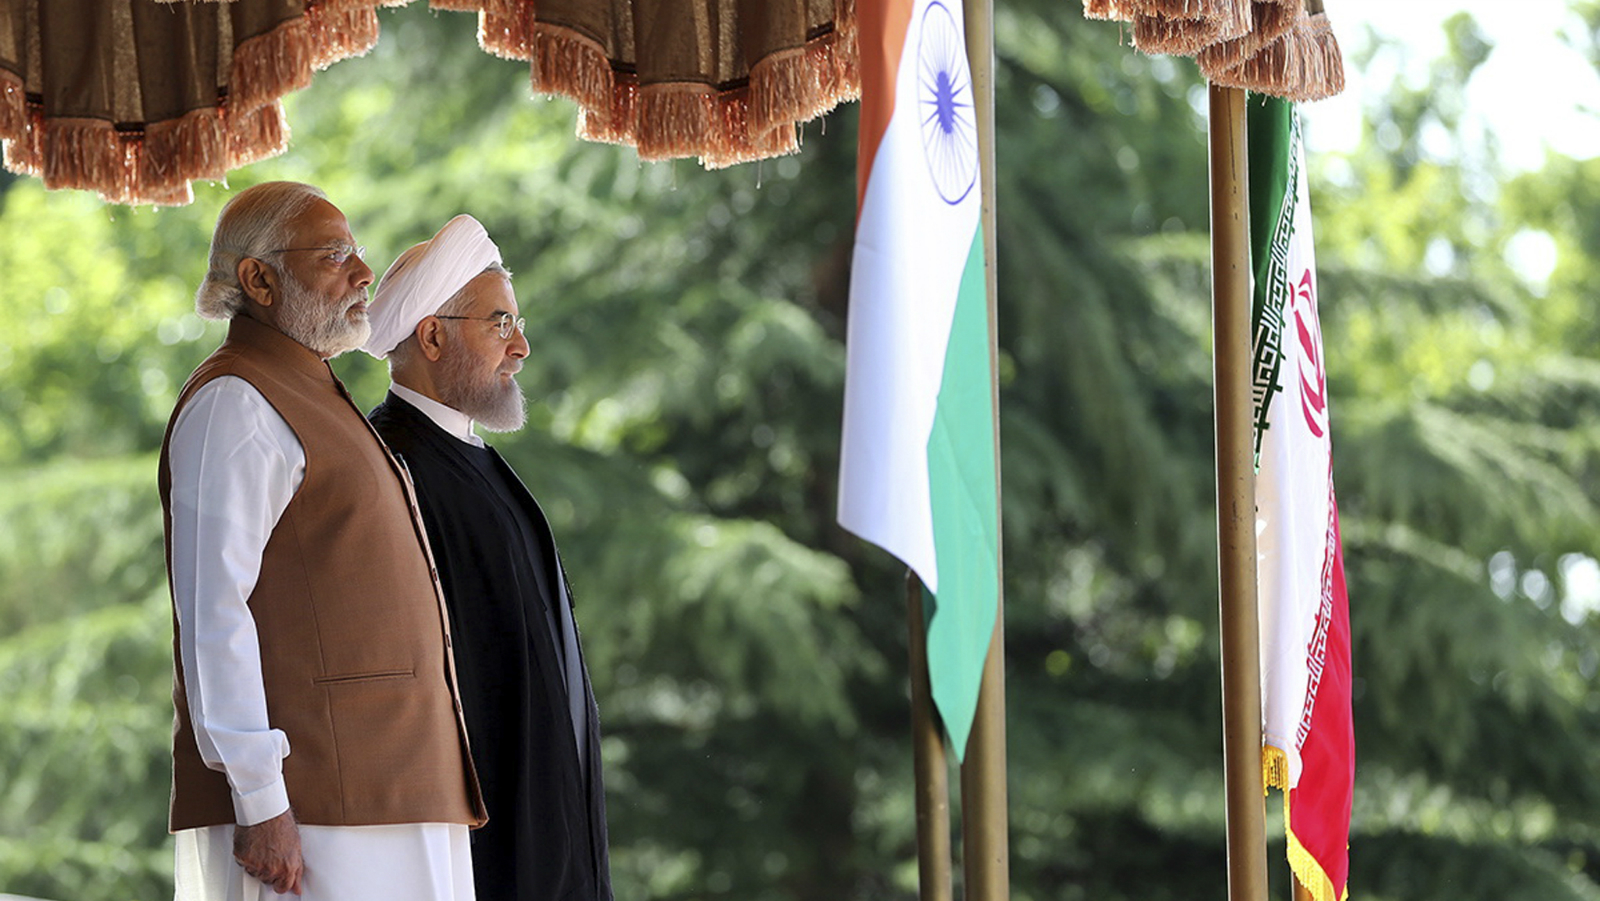 A handout picture made available by Presidential Office of Iran shows Iranian President Hassan Rouhani (R) welcome Indian Prime minister Narendra Modi (L) during a welcome ceremony in Tehran, Iran, 23 May 2016. Prime Minster Modhi is in Tehran on a two day visit, and will discuss trade and security issues with the Iranian President. EPA/PRESIDENTIAL OFFICE OF IRAN / HANDOUT HANDOUT EDITORIAL USE ONLY